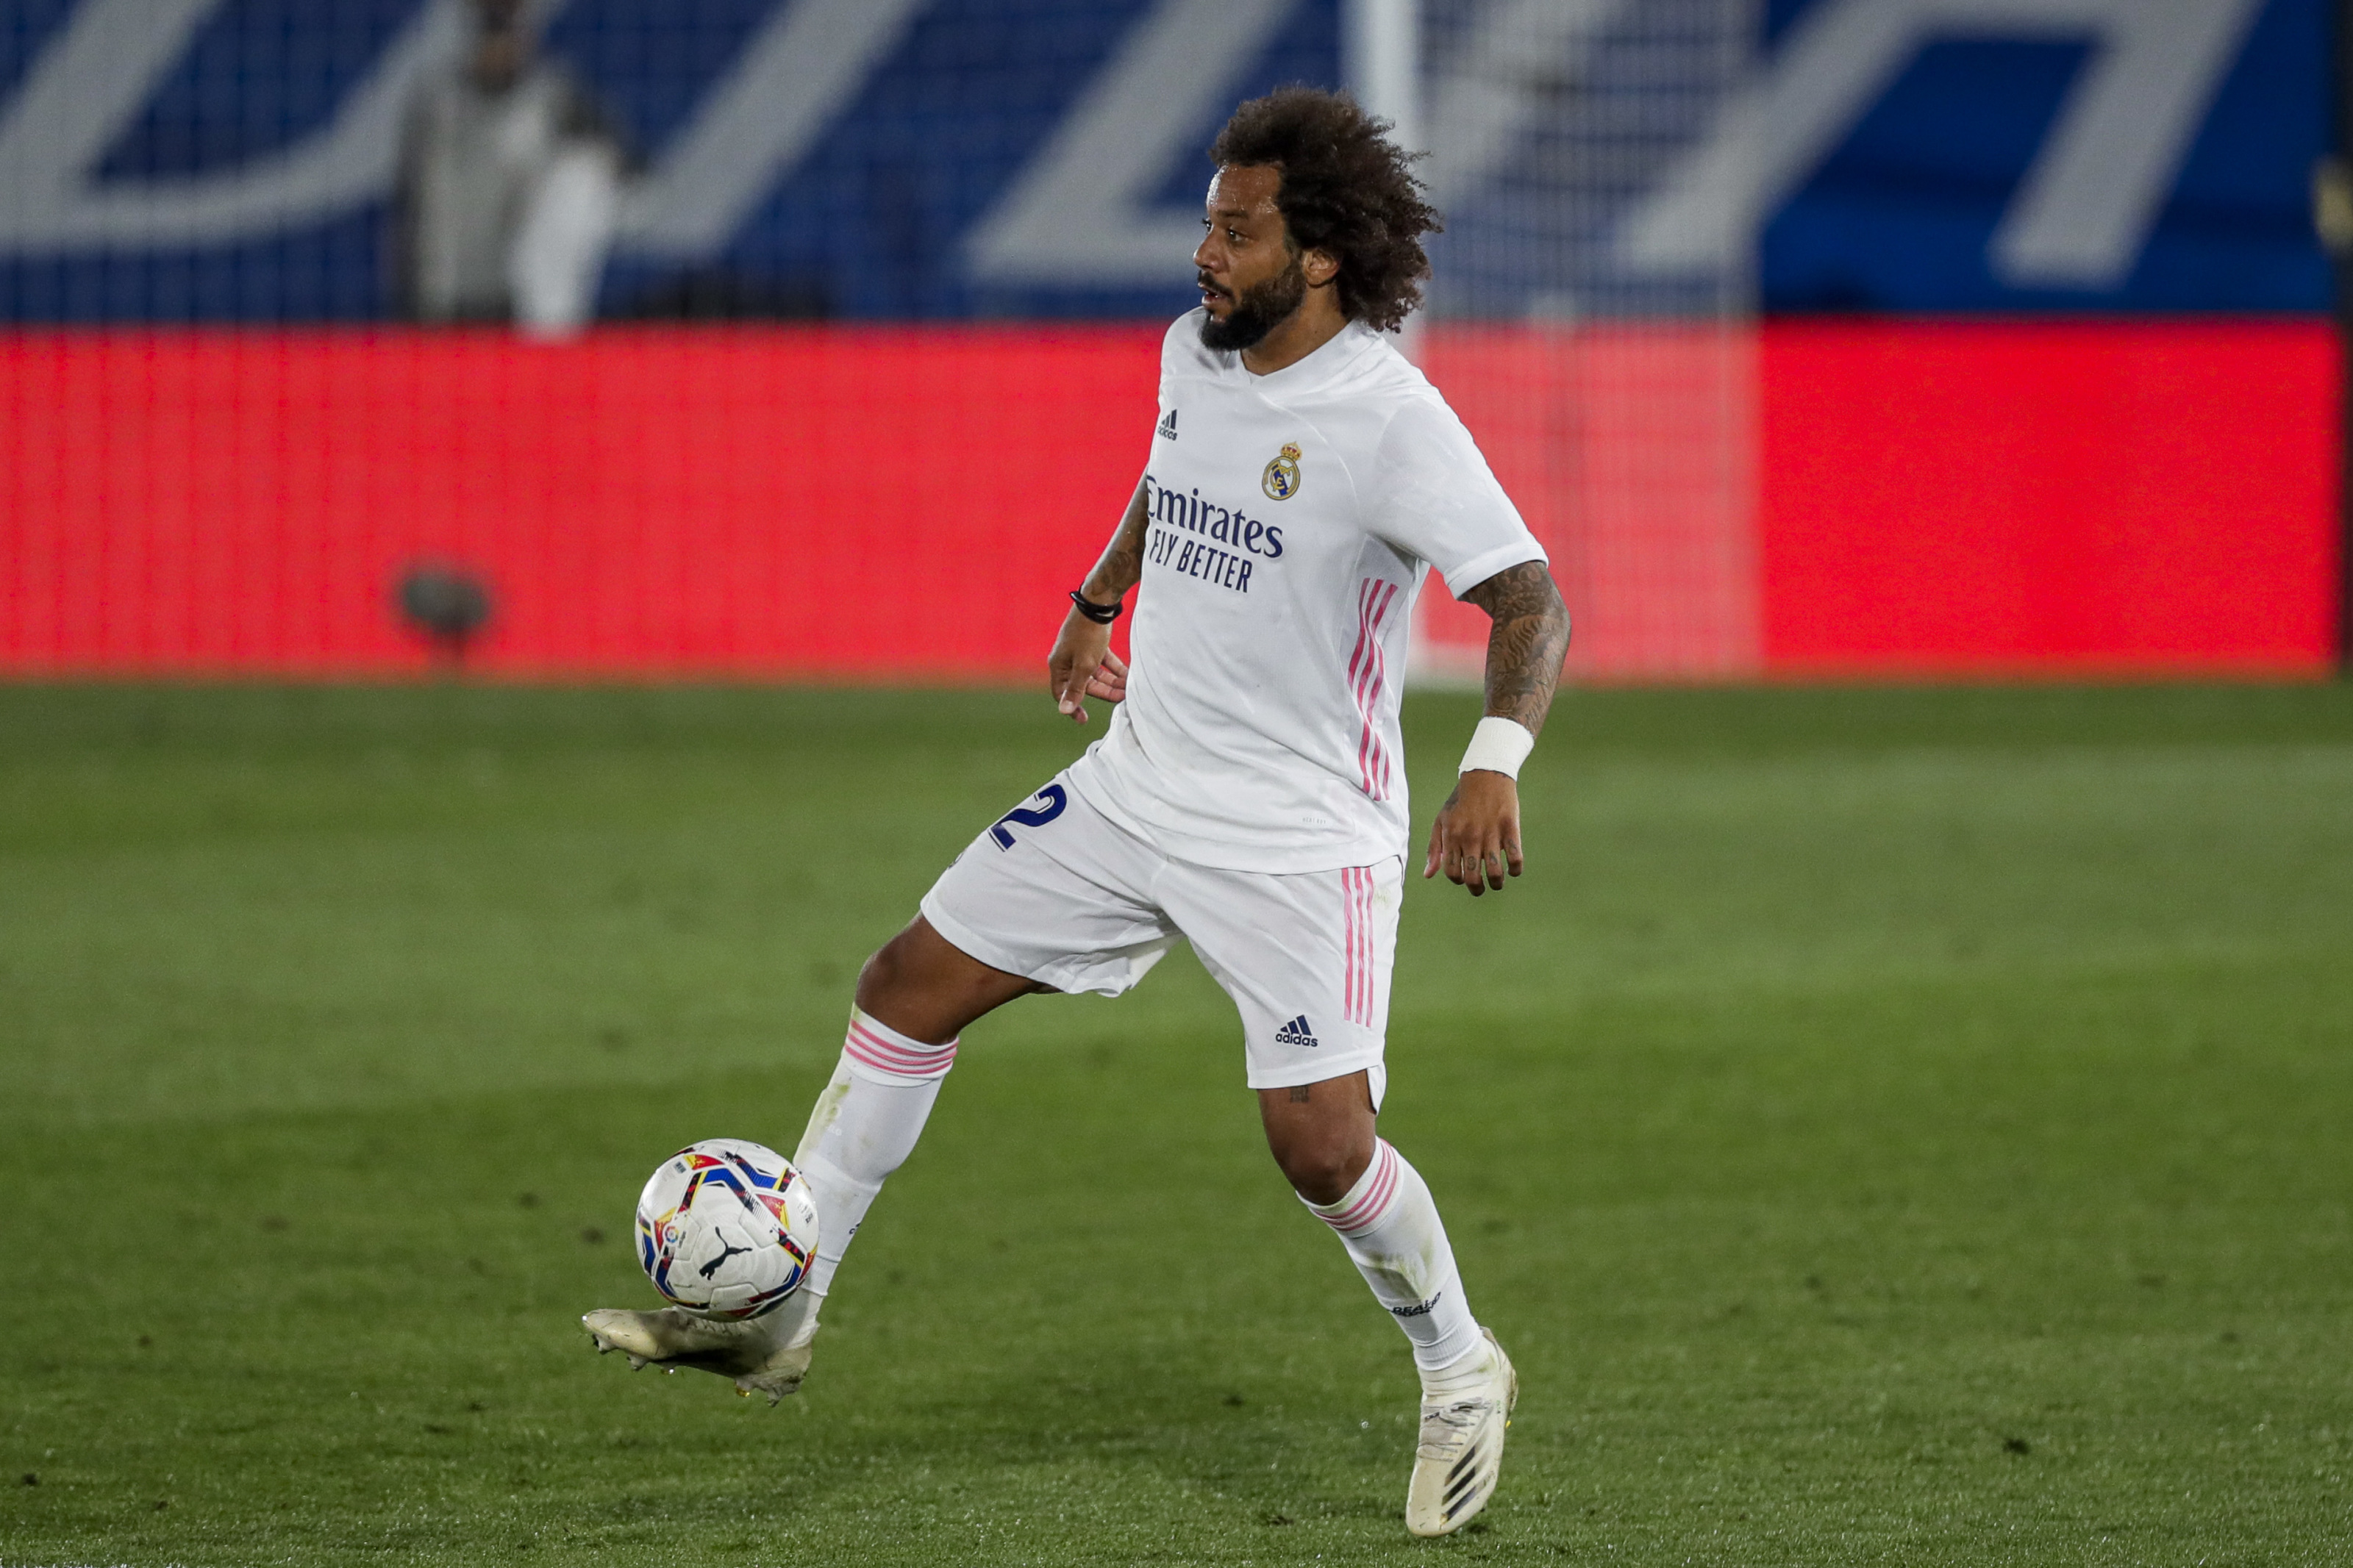 Real Madrid: Should we be concerned about Marcelo?